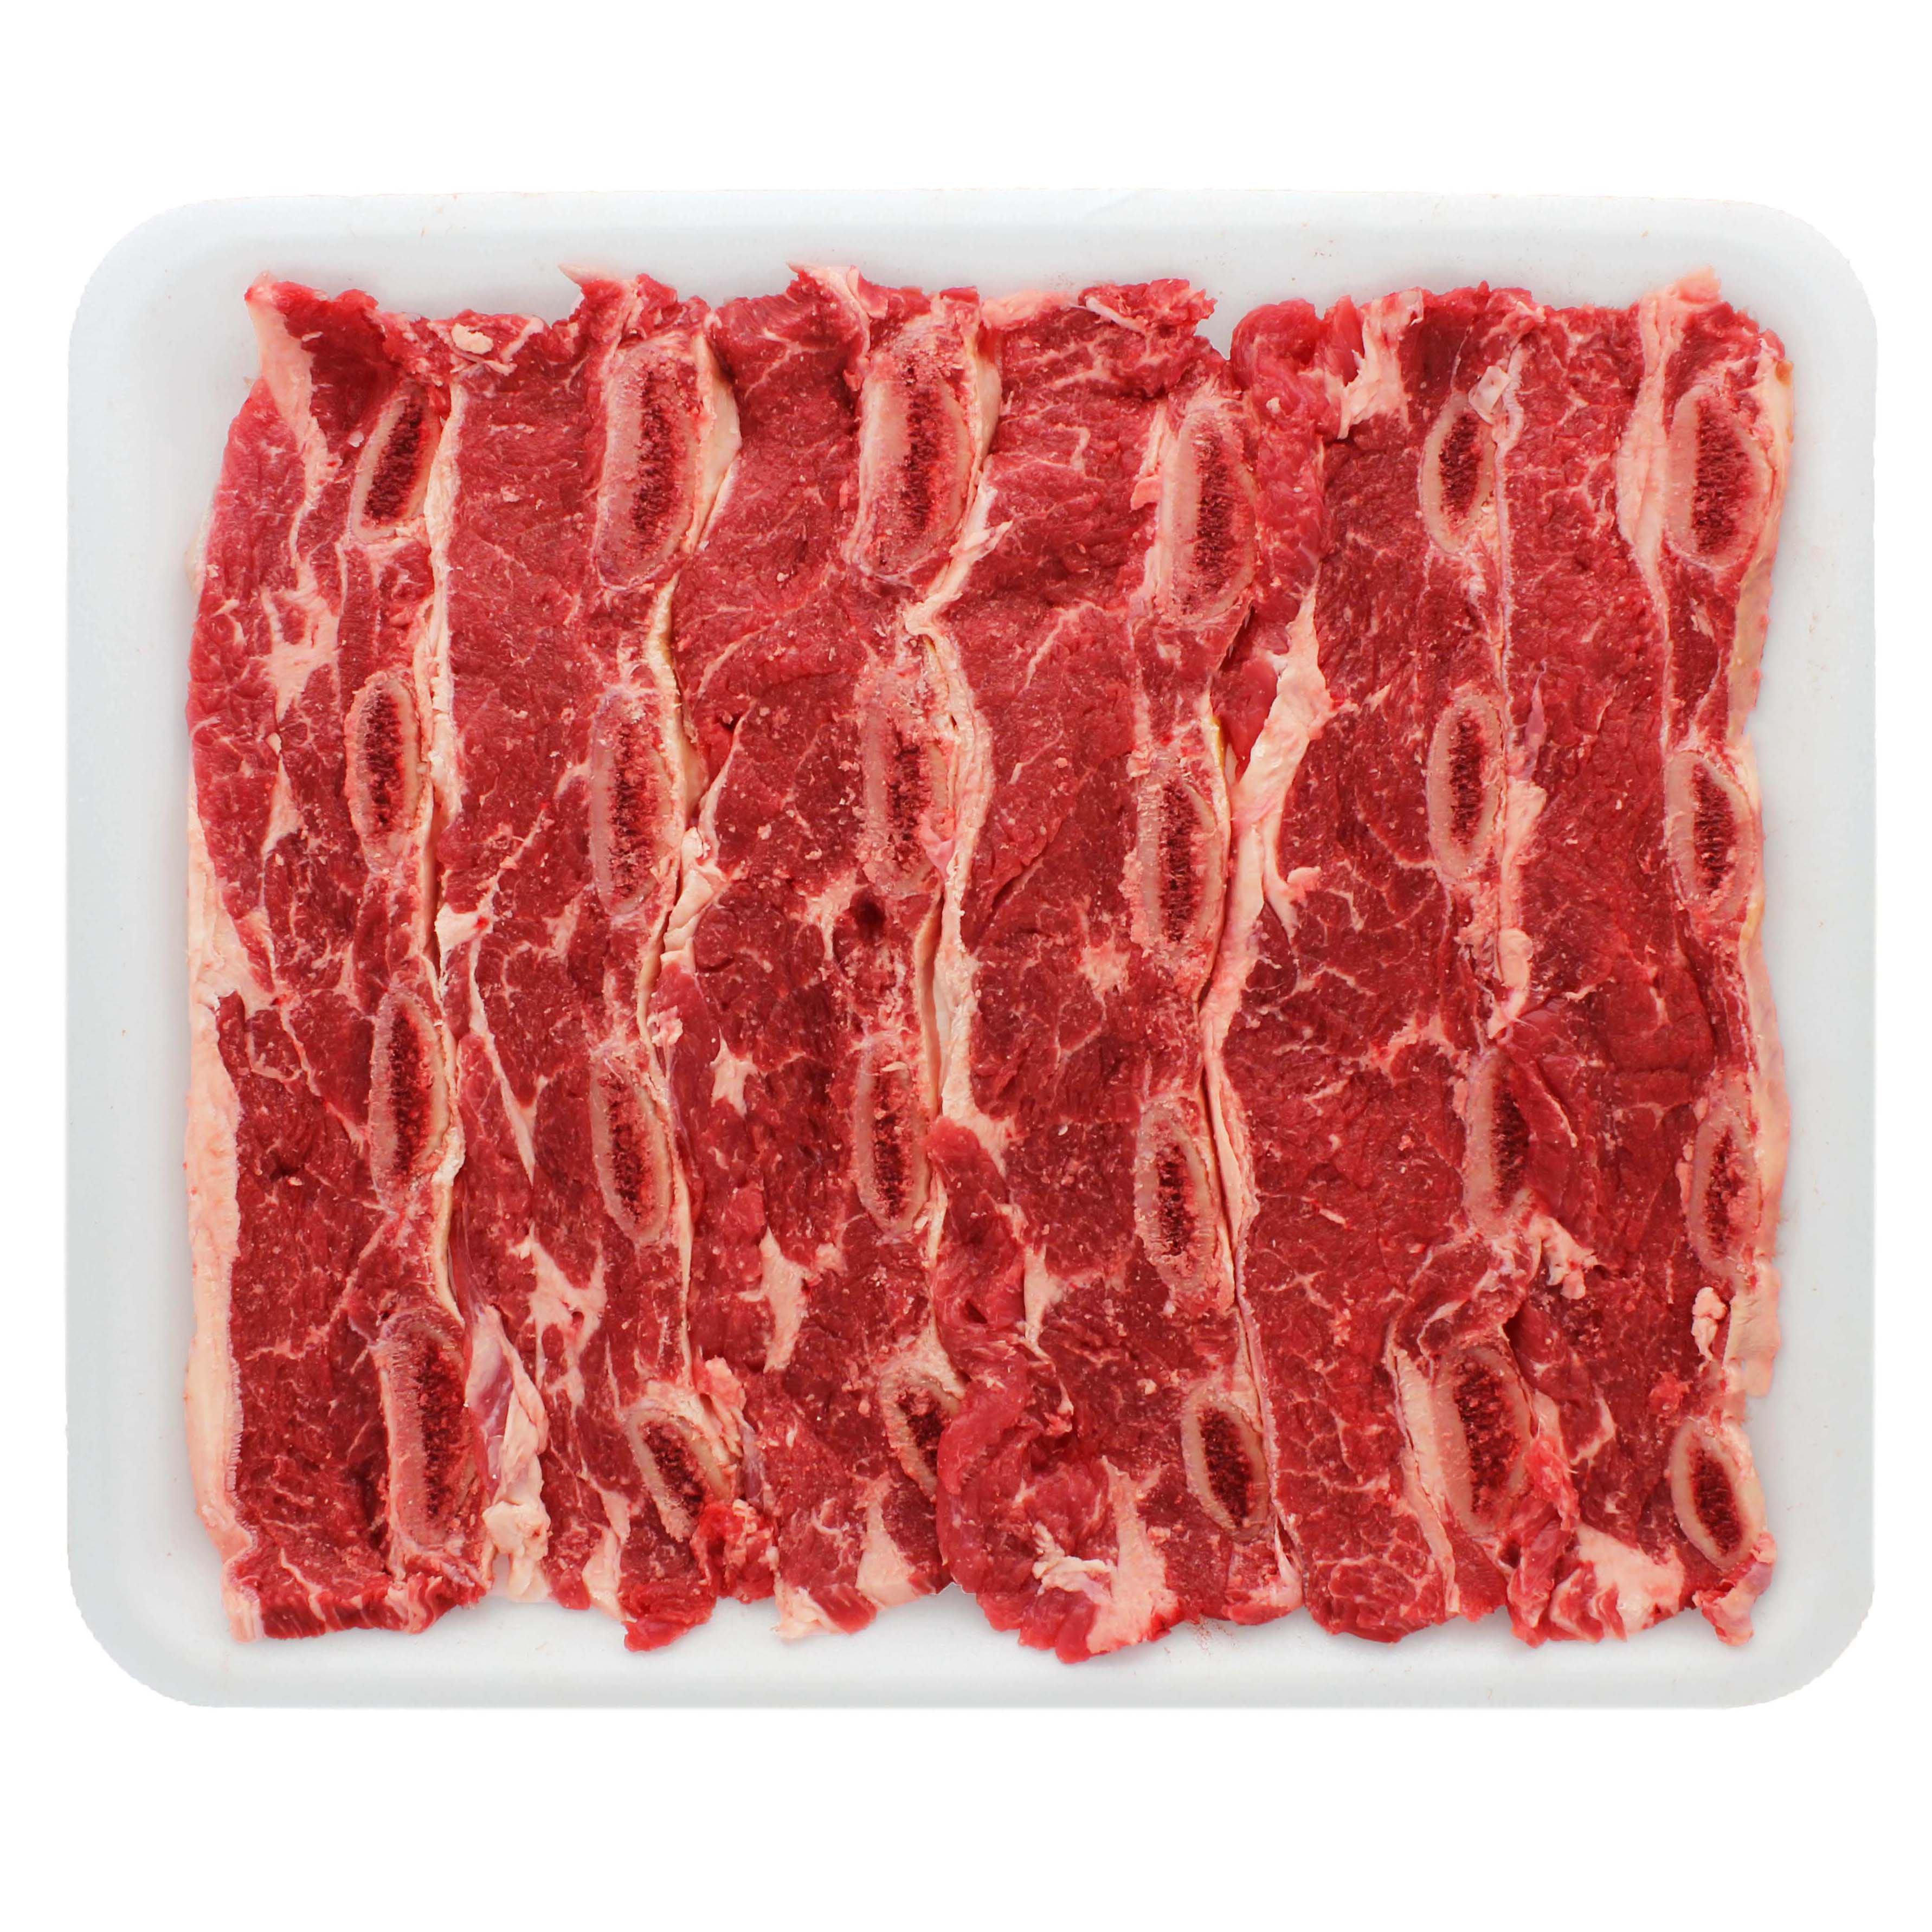 H E B Beef Chuck Shoulder Flanken Style Ribs Thin Bone In Value Pack Shop Beef At H E B